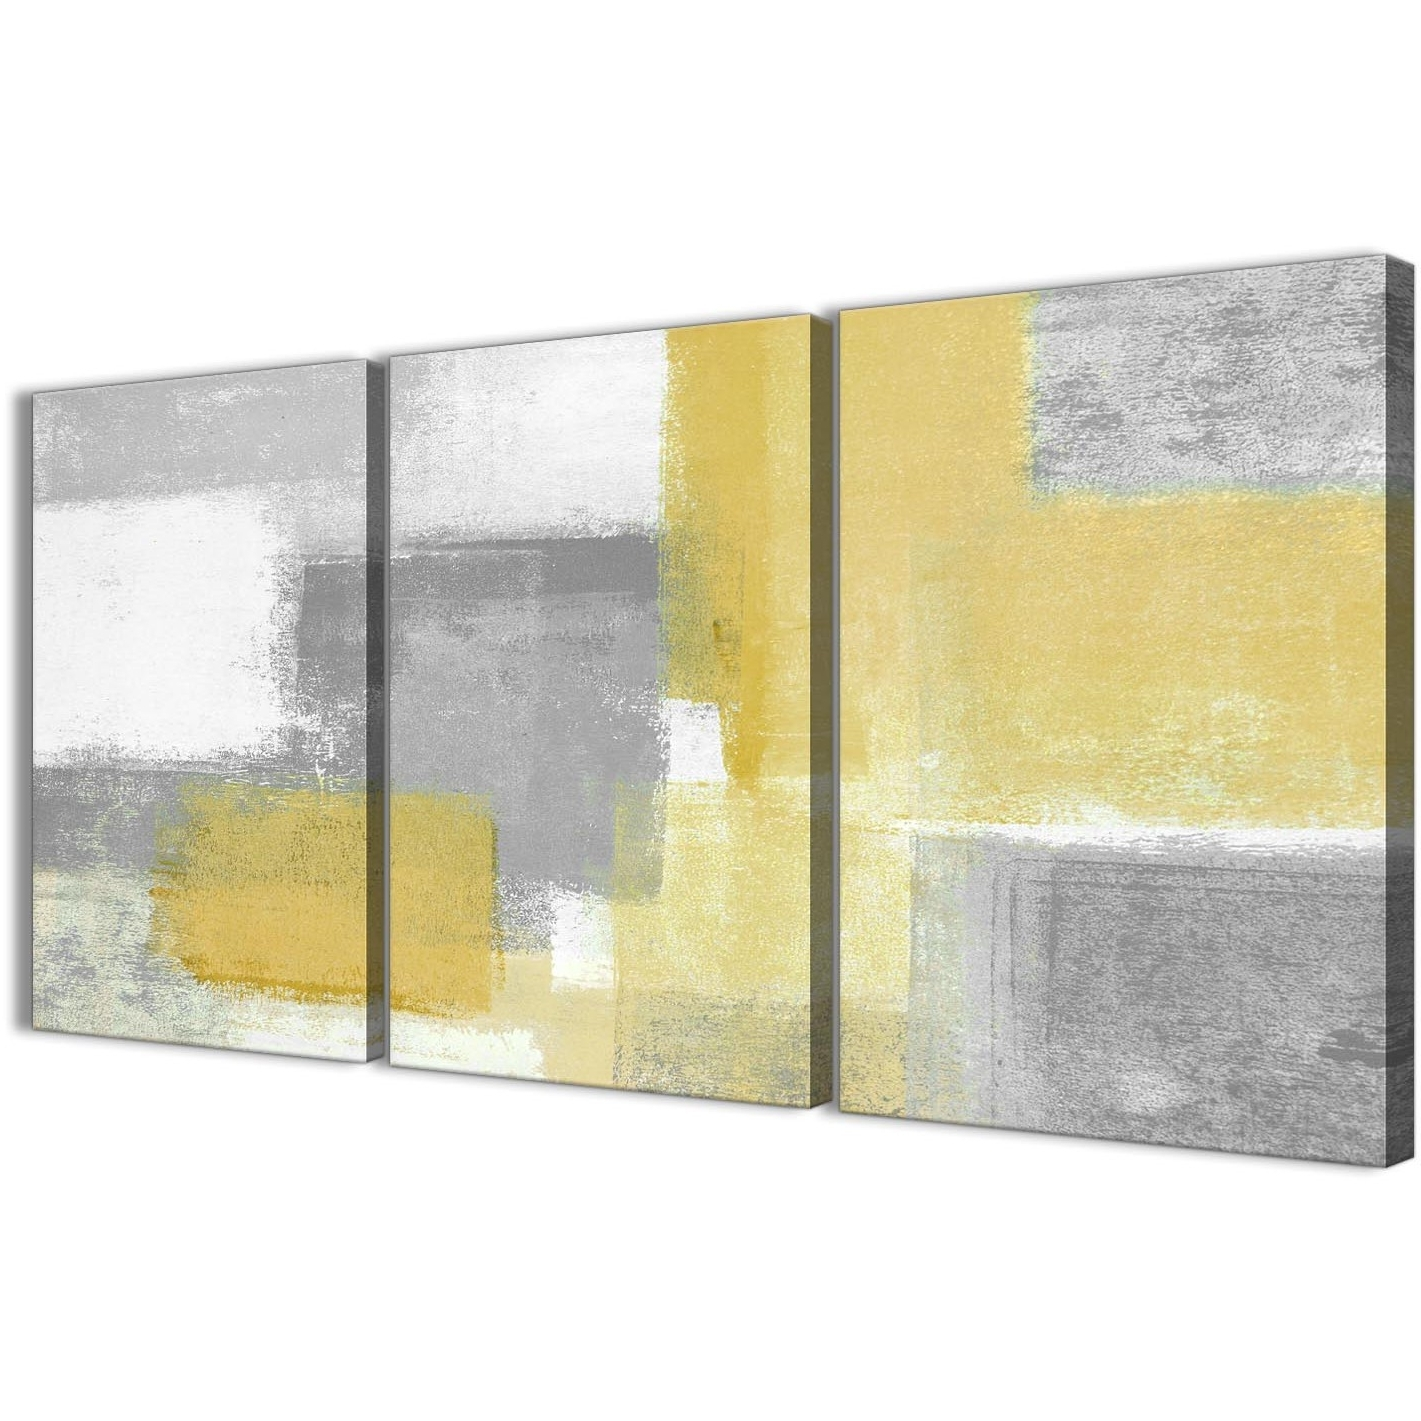 Wall Canvas Art Regarding Well Known 3 Panel Mustard Yellow Grey Kitchen Canvas Wall Art Decor – Abstract (Gallery 14 of 15)